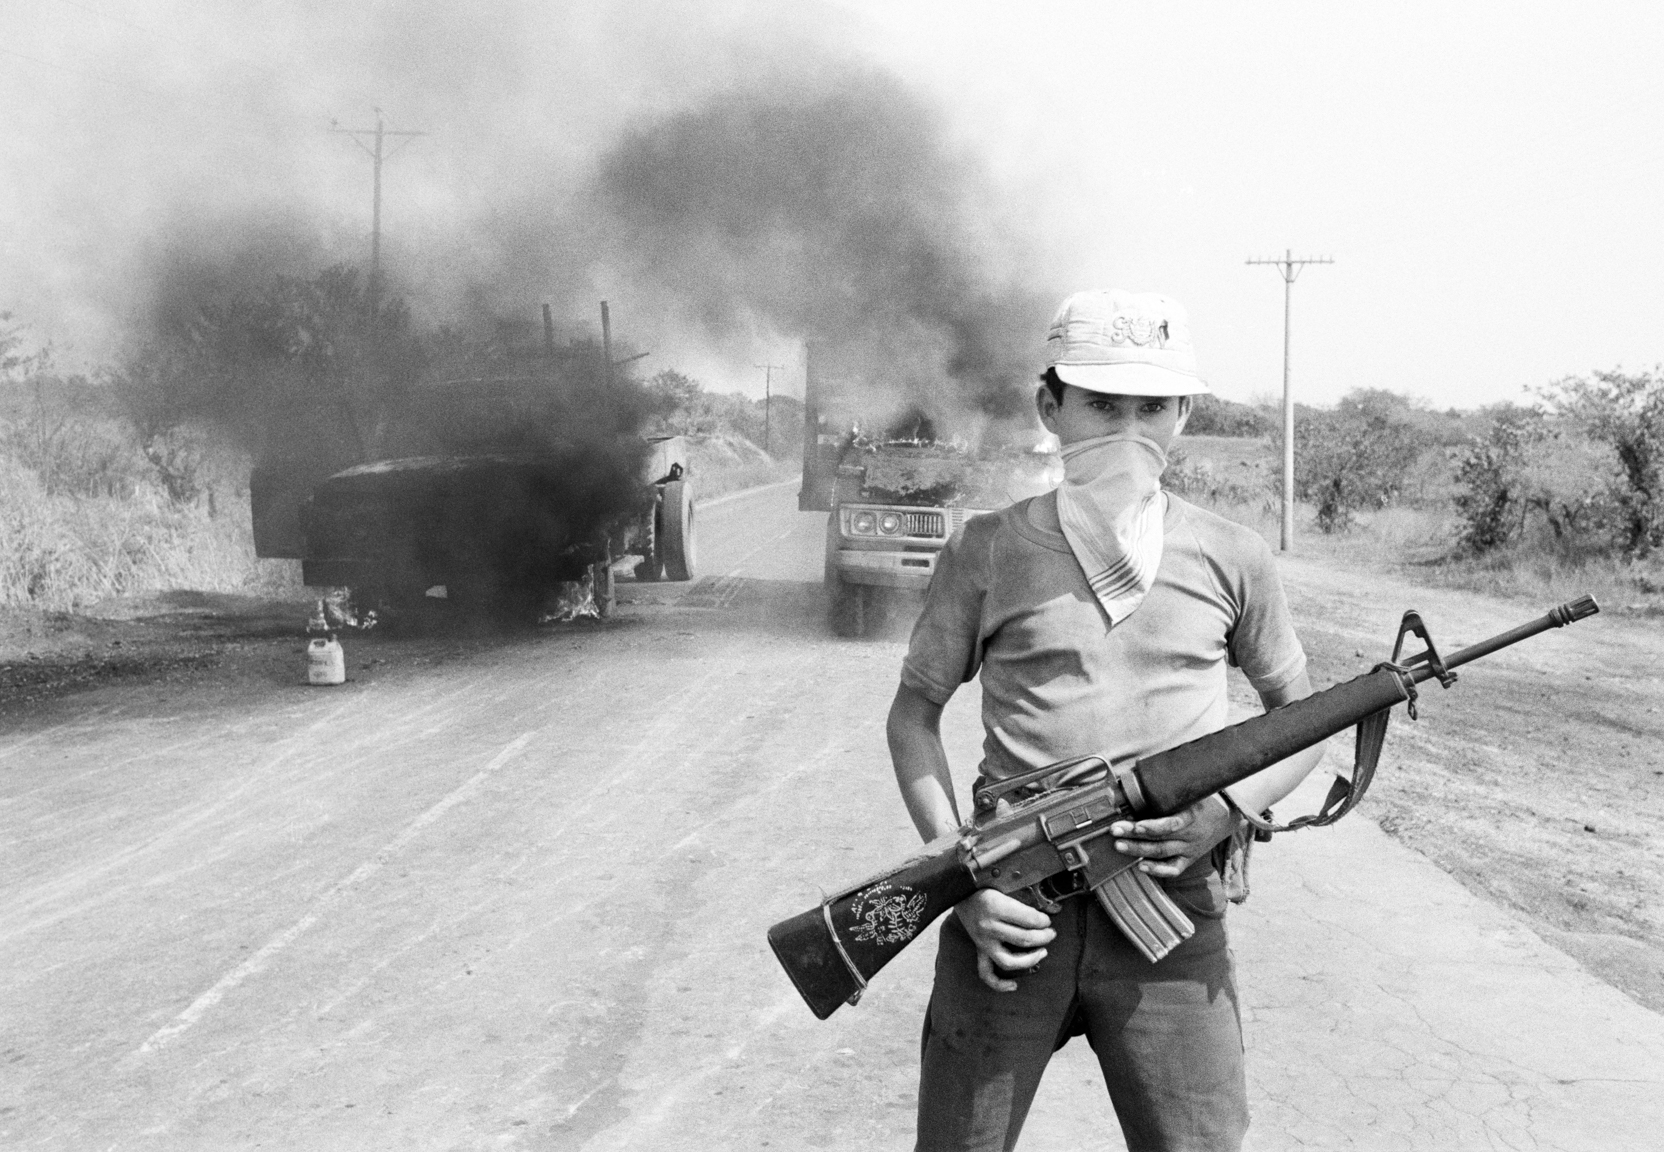 A member of the Salvadoran guerrilla group Ejército Revolucionario del Pueblo, or ERP, stands in front of two burning commercial vehicles on the Pan American Highway March 1, 1983 in Usulatan, El Salvador. Controlling areas of eastern El Salvador, the ERP would target and burn vehicles traveling on the highway if a commercial strike had been called to show defiance of Salvadoran government control.